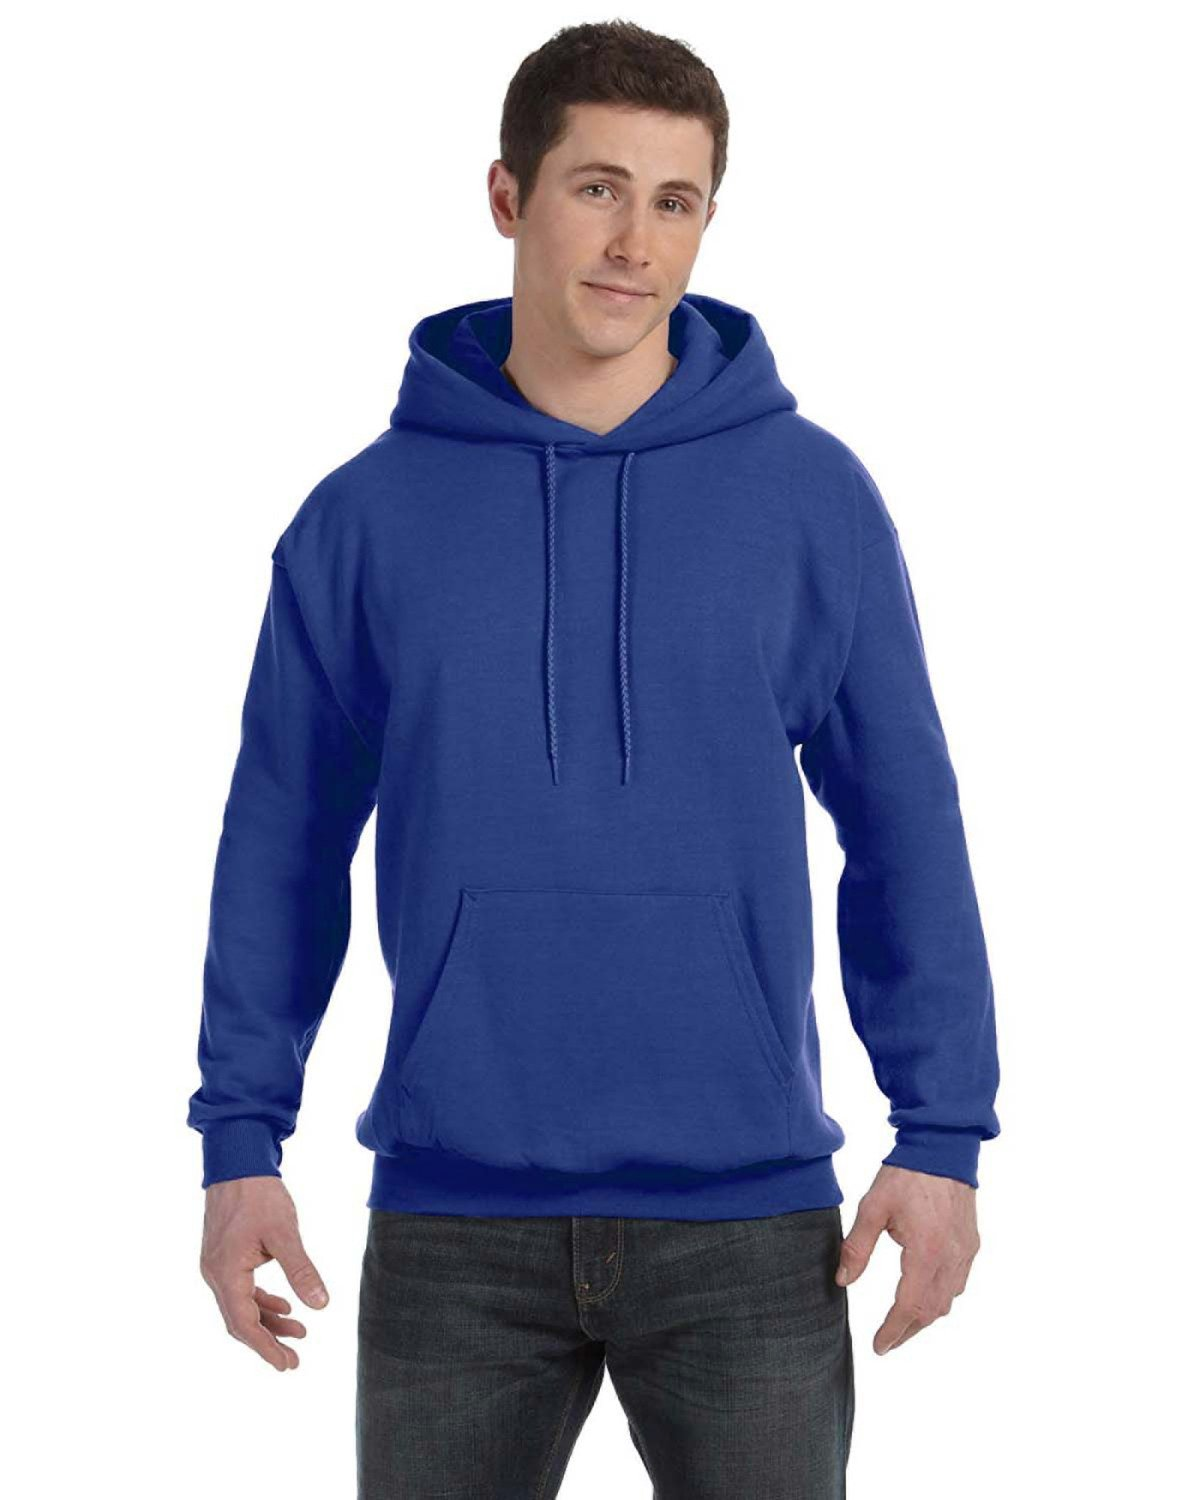 Hanes Unisex Ecosmart® 50/50 Pullover Hooded Sweatshirt DEEP ROYAL